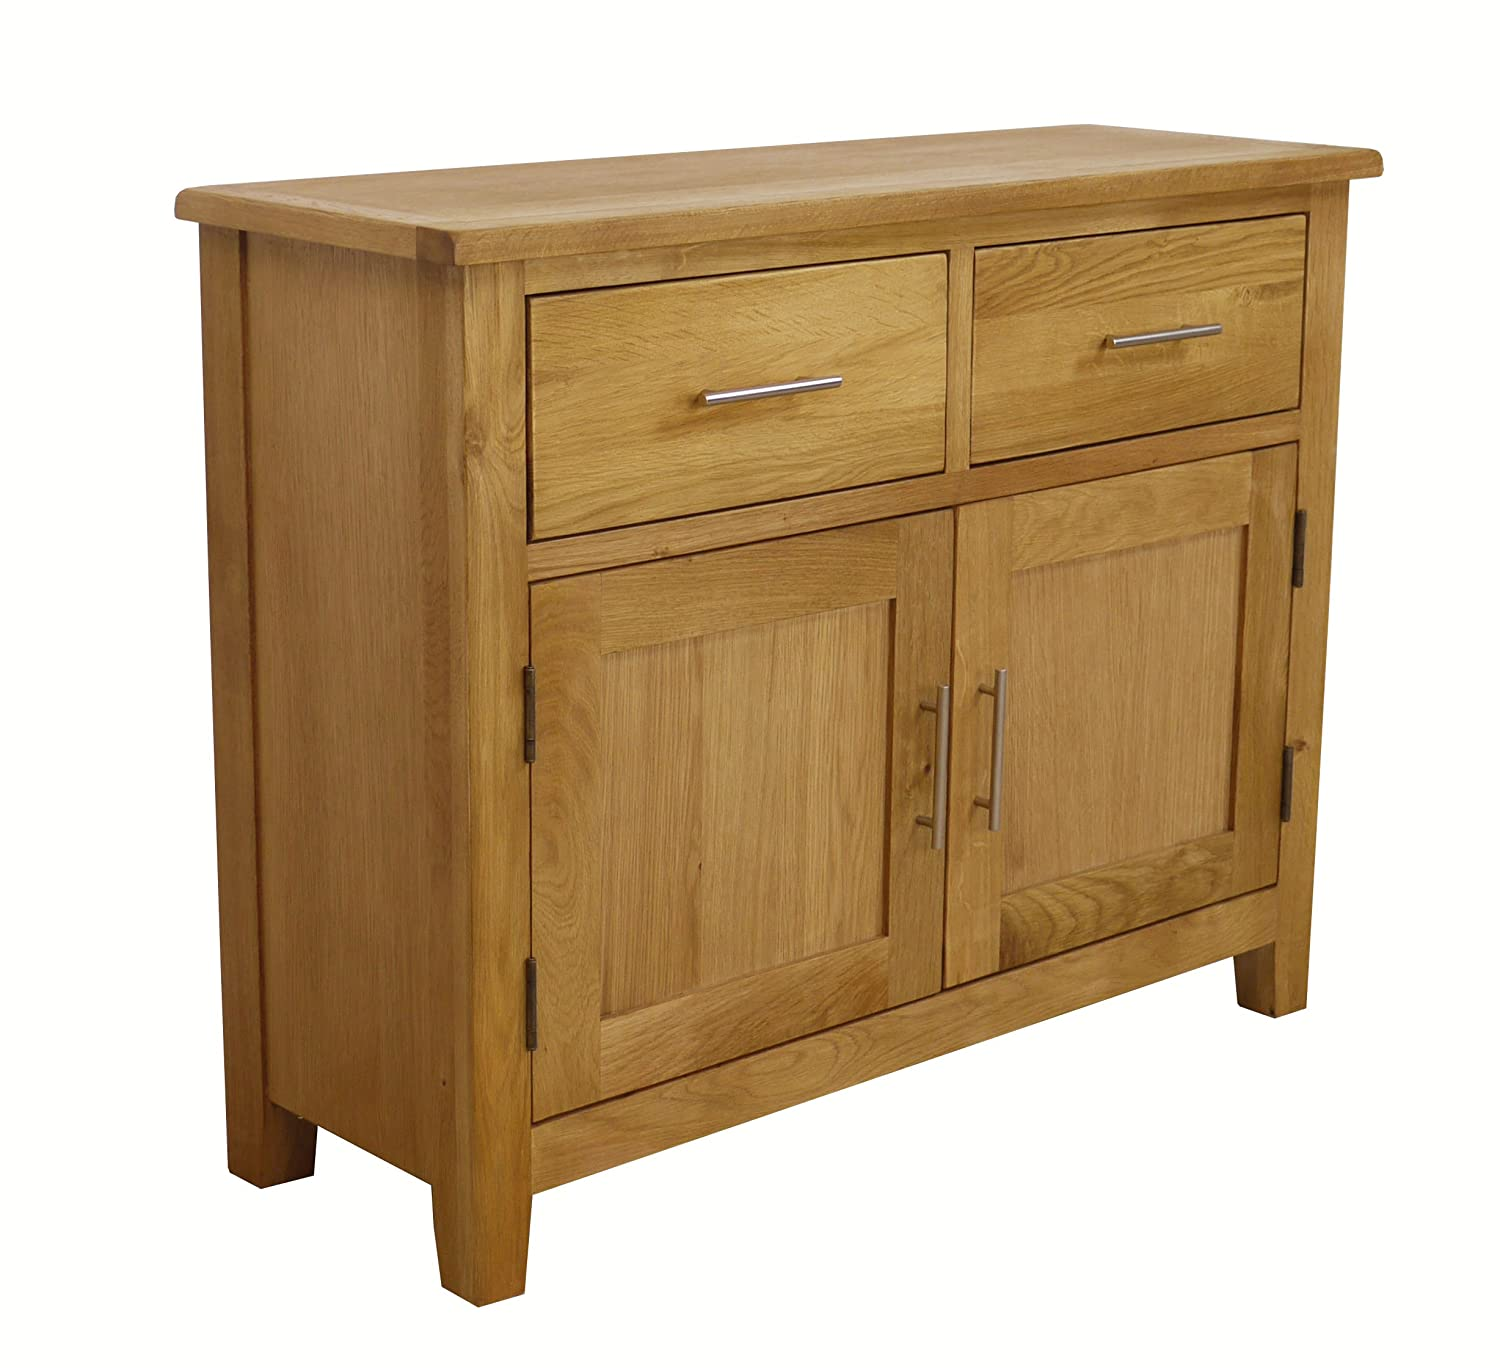 Nebraska Oak   Small Sideboard / 2 Door 2 Drawer Storage Dresser Cupboard  Cabinet Unit: Amazon.co.uk: Kitchen U0026 Home Part 88